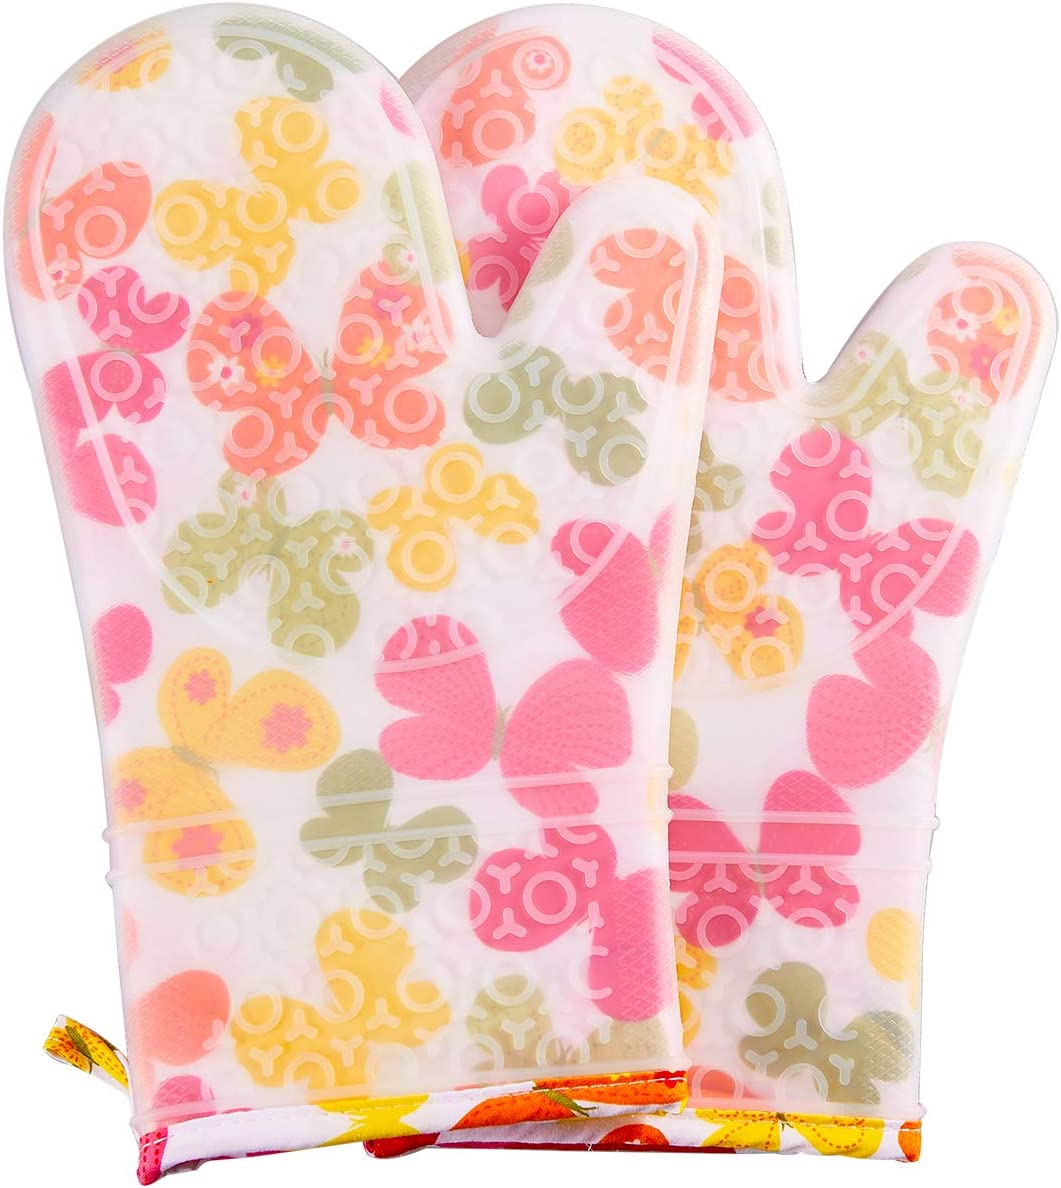 FAVIA Silicone Oven Mitts Heat Resistant Flexible Cooking Gloves for Grill BBQ Kitchen Microwave Non-Slip and Waterproof BPA Free 1 Pair (Medium, White Base with Butterfly)